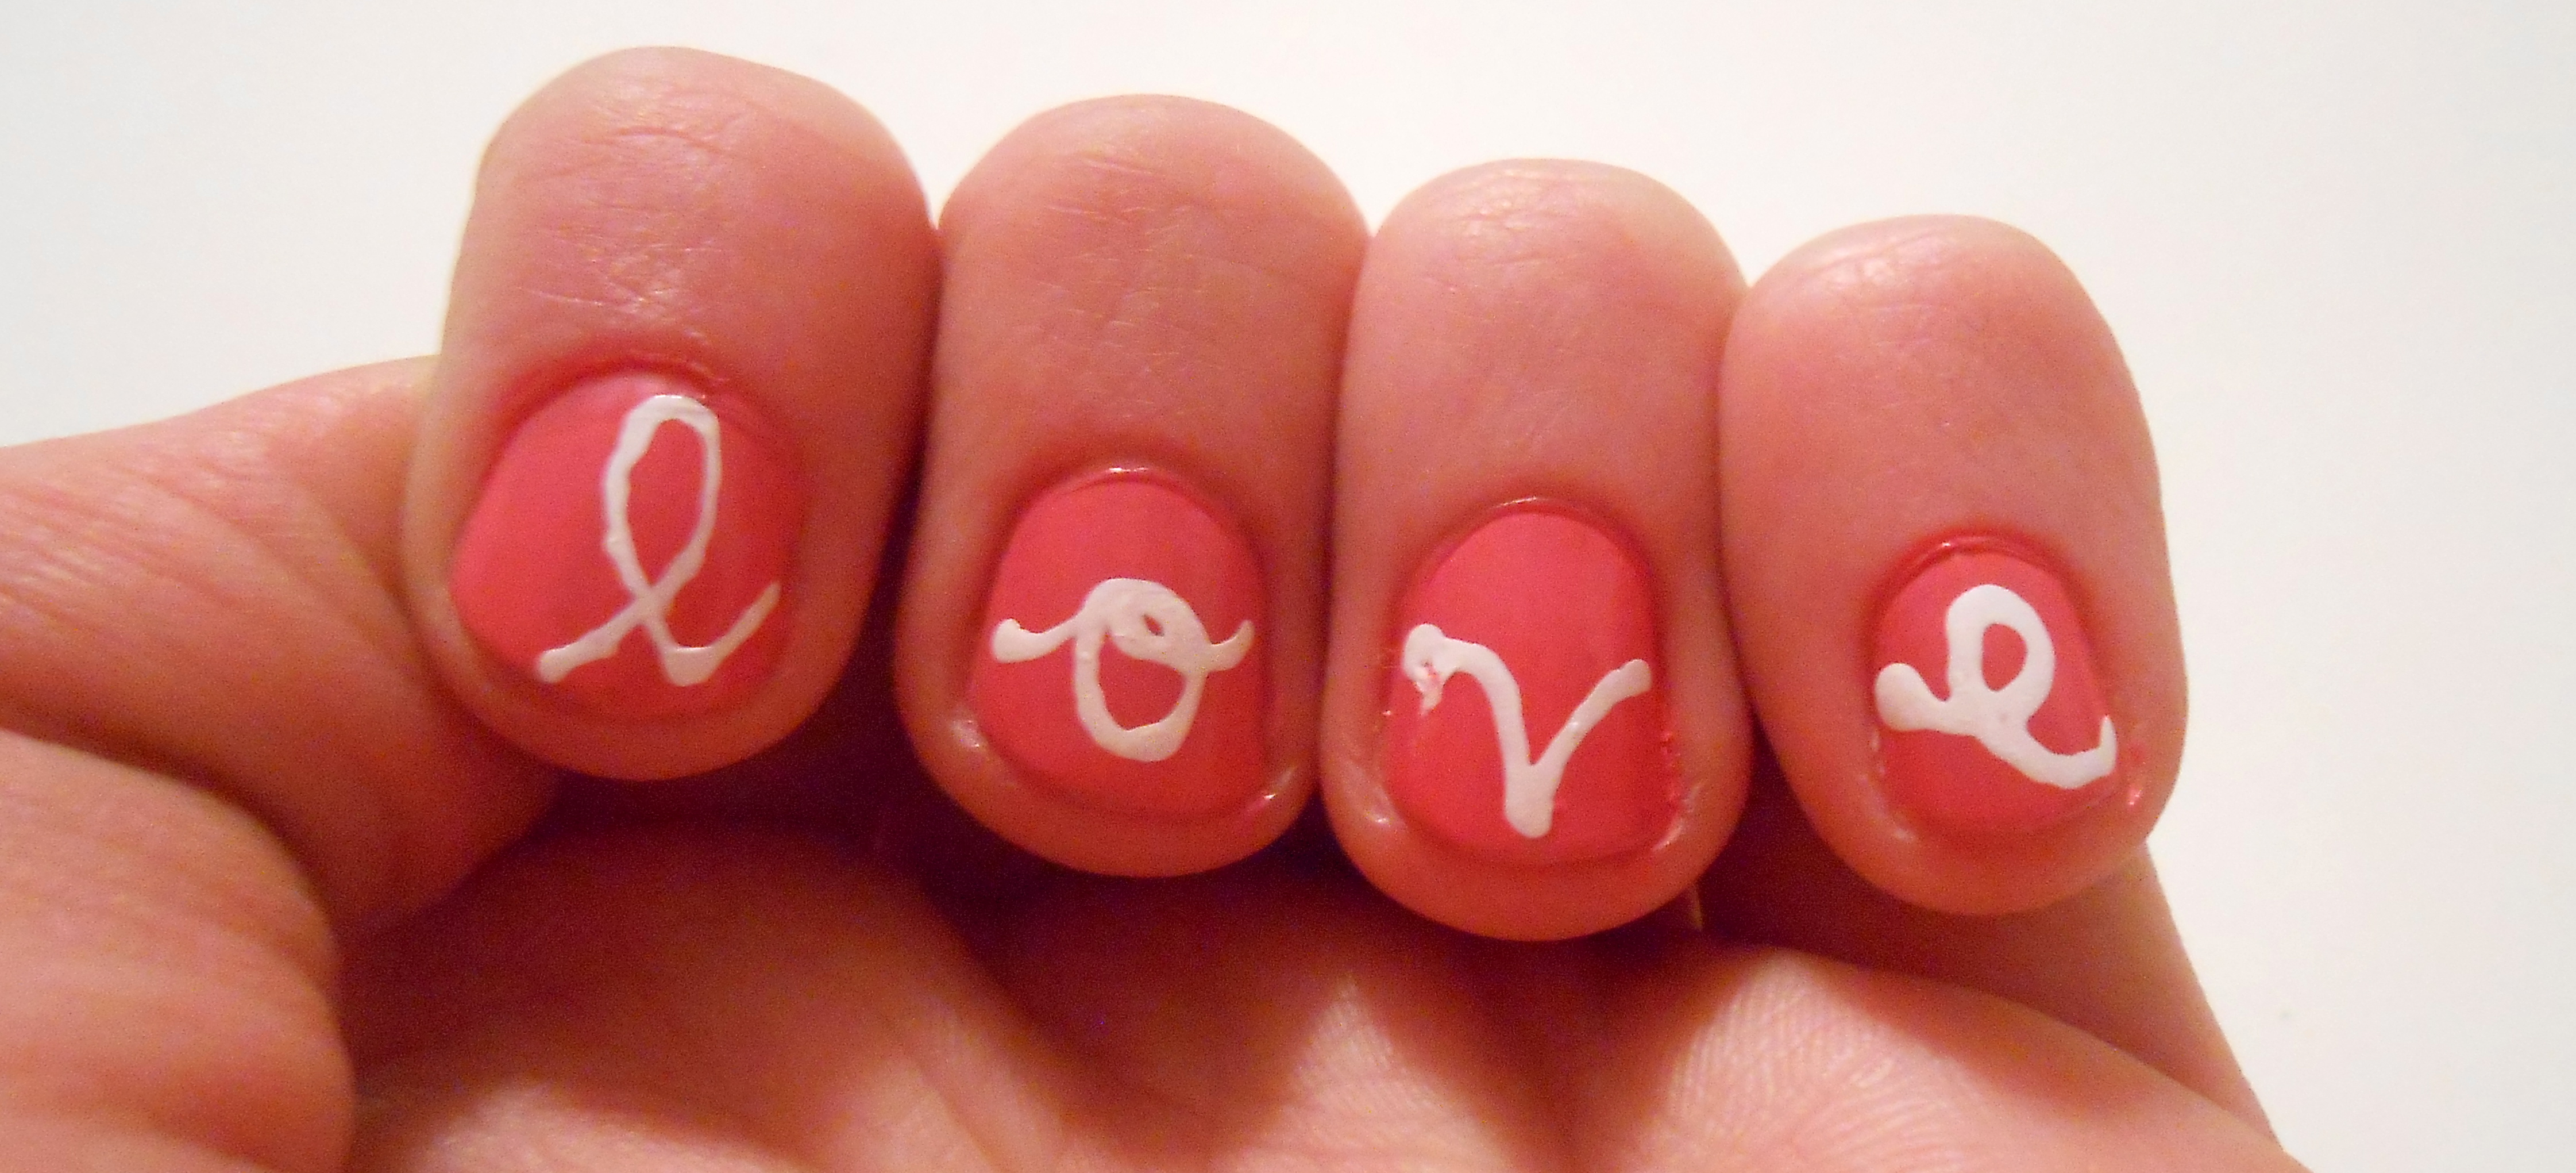 Diy nail design love script the little things in life dscn1919 prinsesfo Images